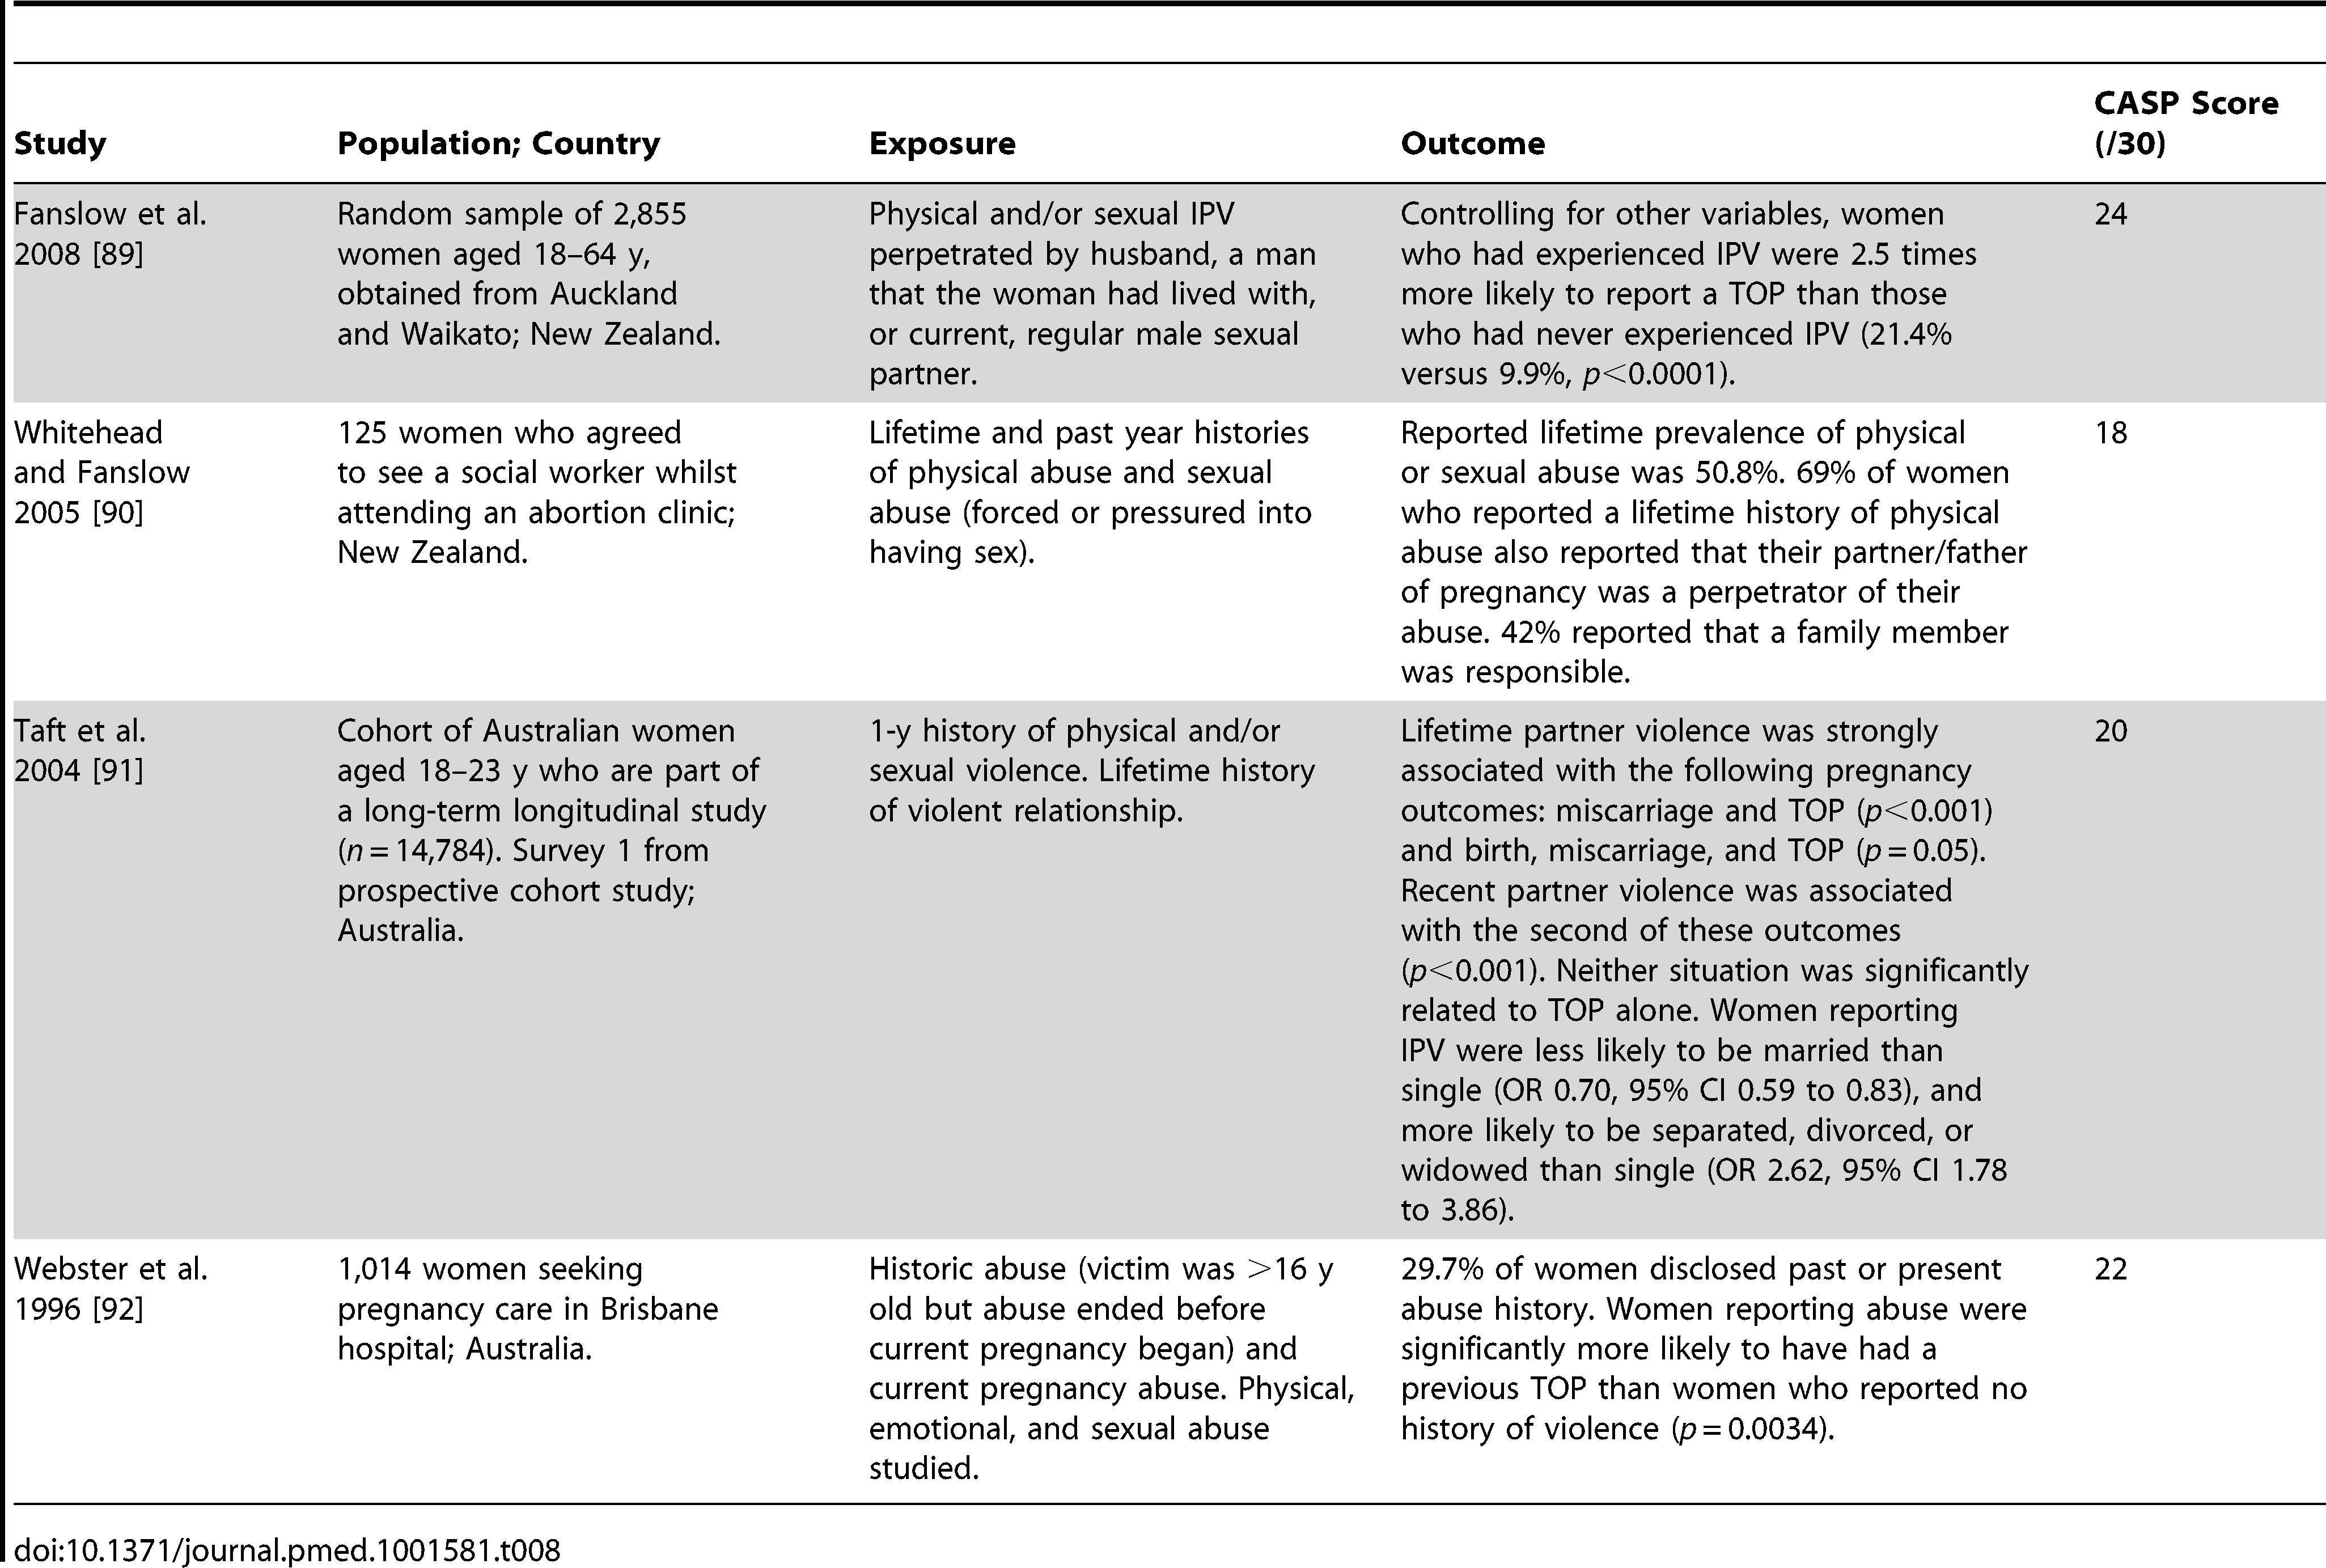 Characteristics of included cross-sectional studies from Australasia.